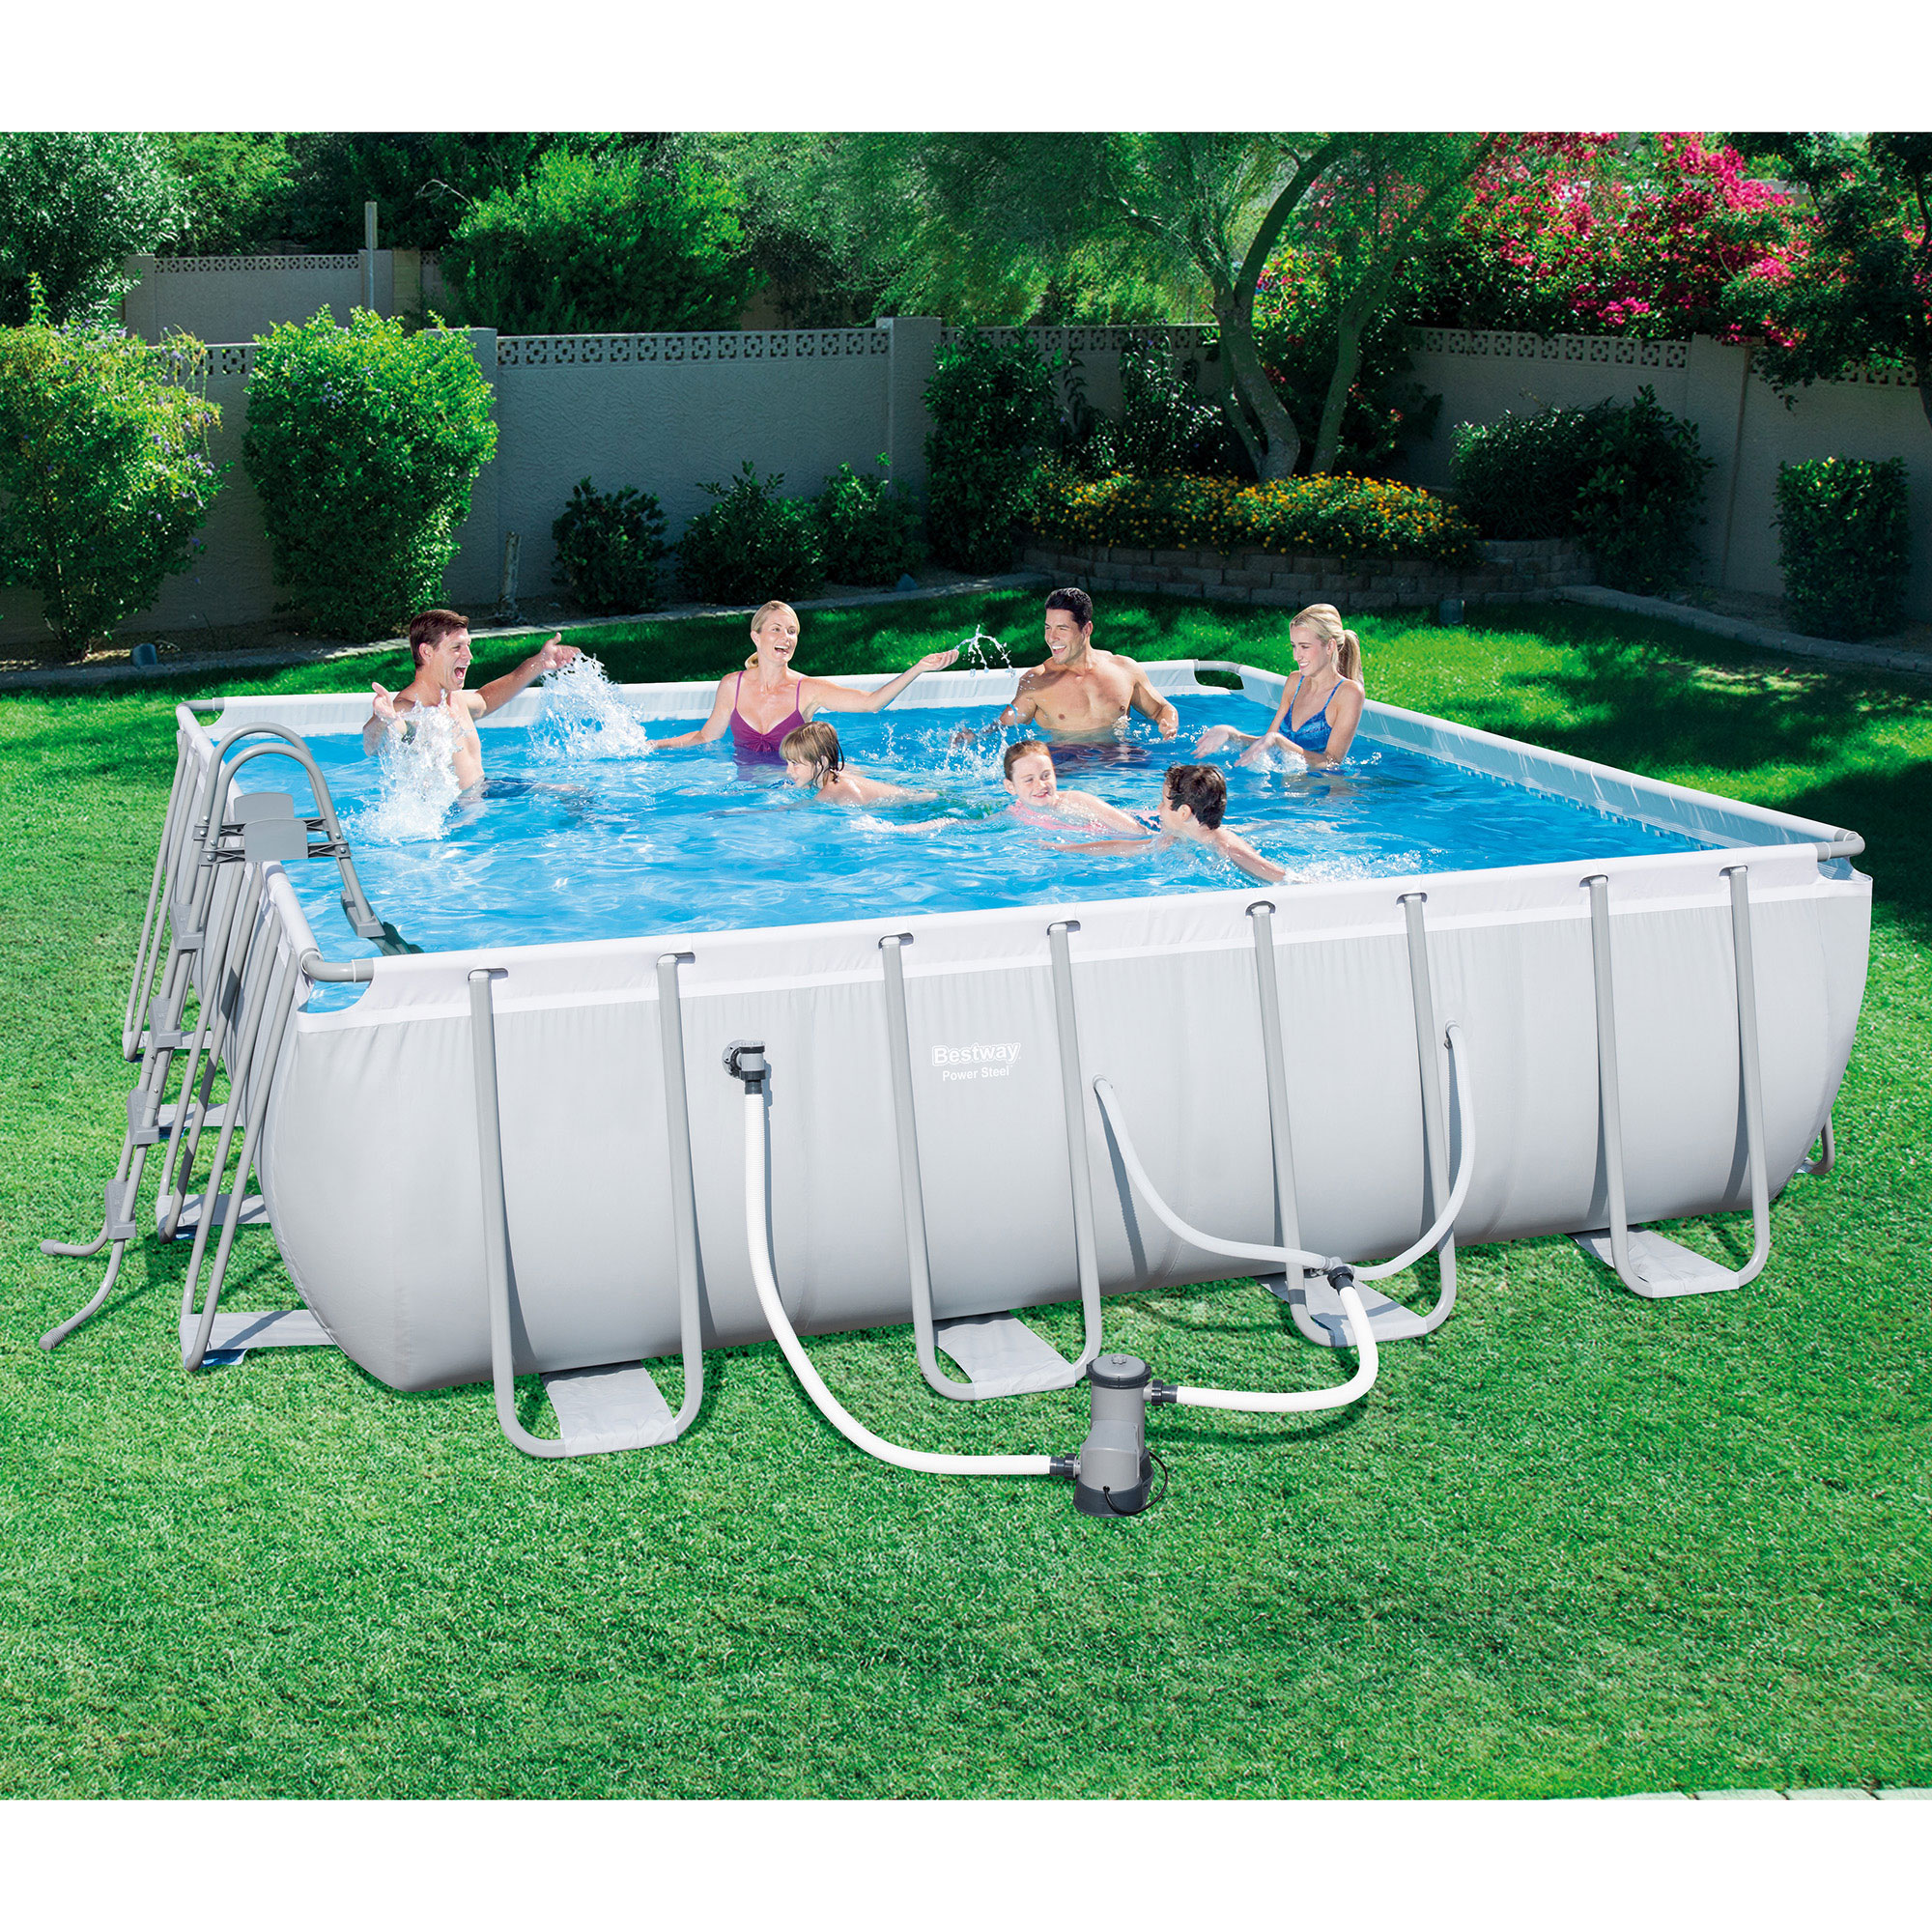 bestway 16 x 48 square frame above ground pool set with ladder and filter pump - Square Above Ground Pool